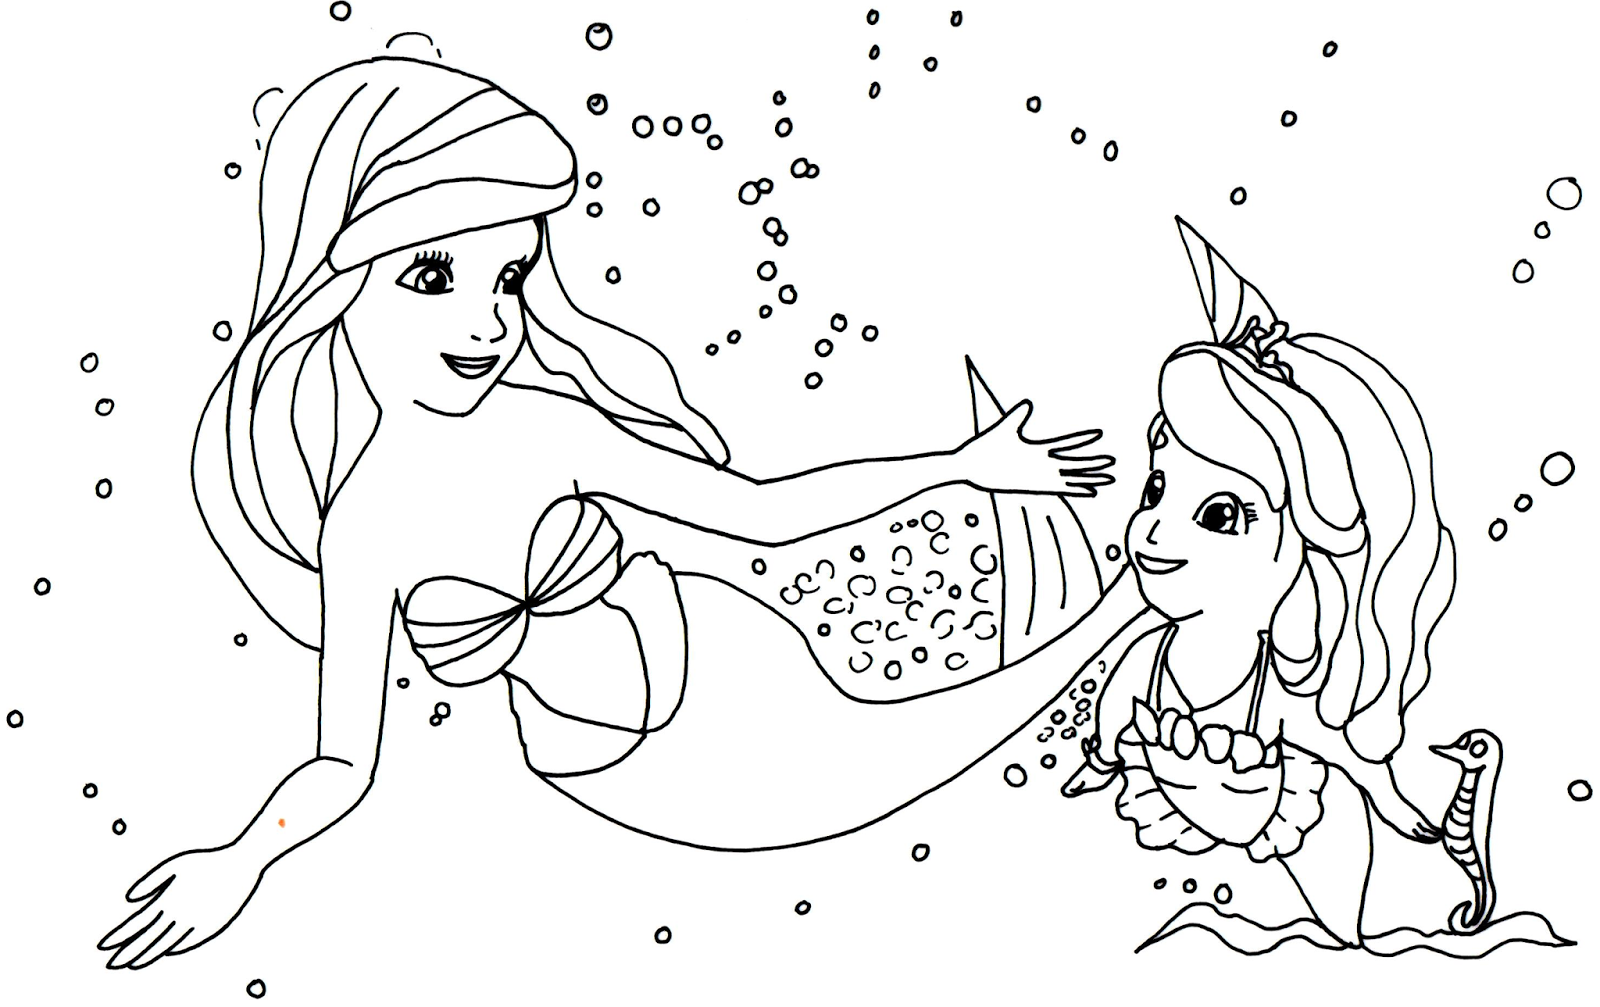 sofia the first coloring pages fotolip com rich image and wallpaper